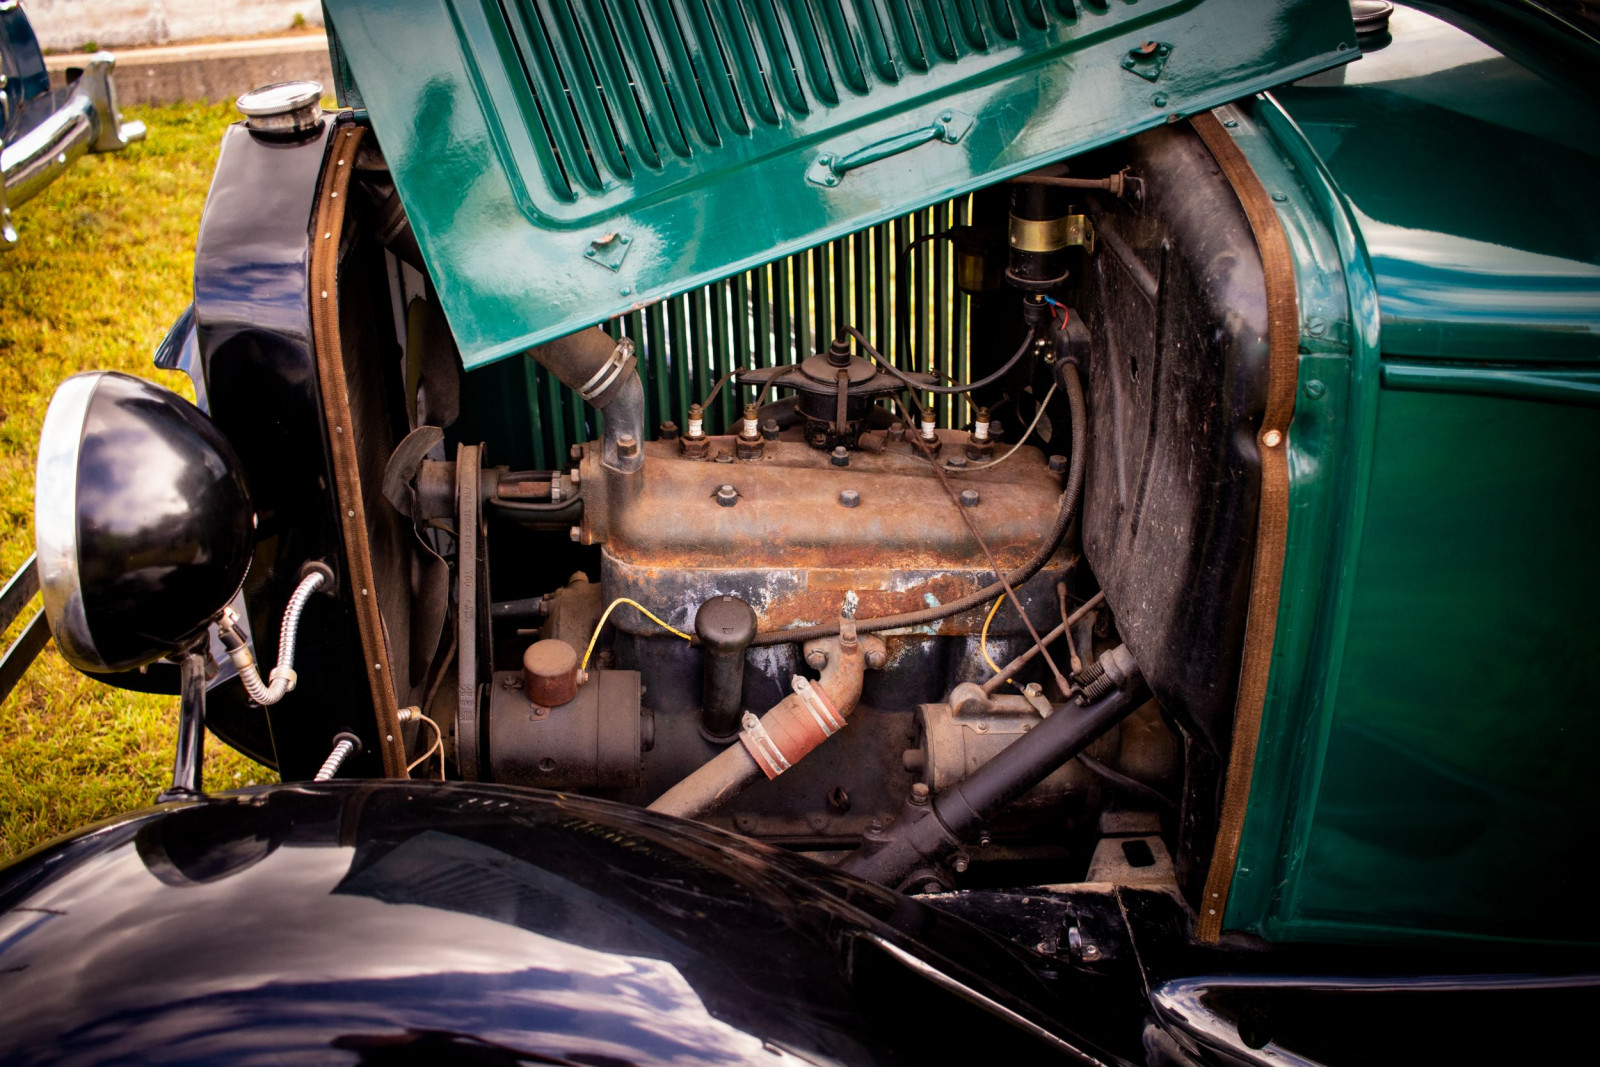 1930 Ford Model A Pickup - Image 17